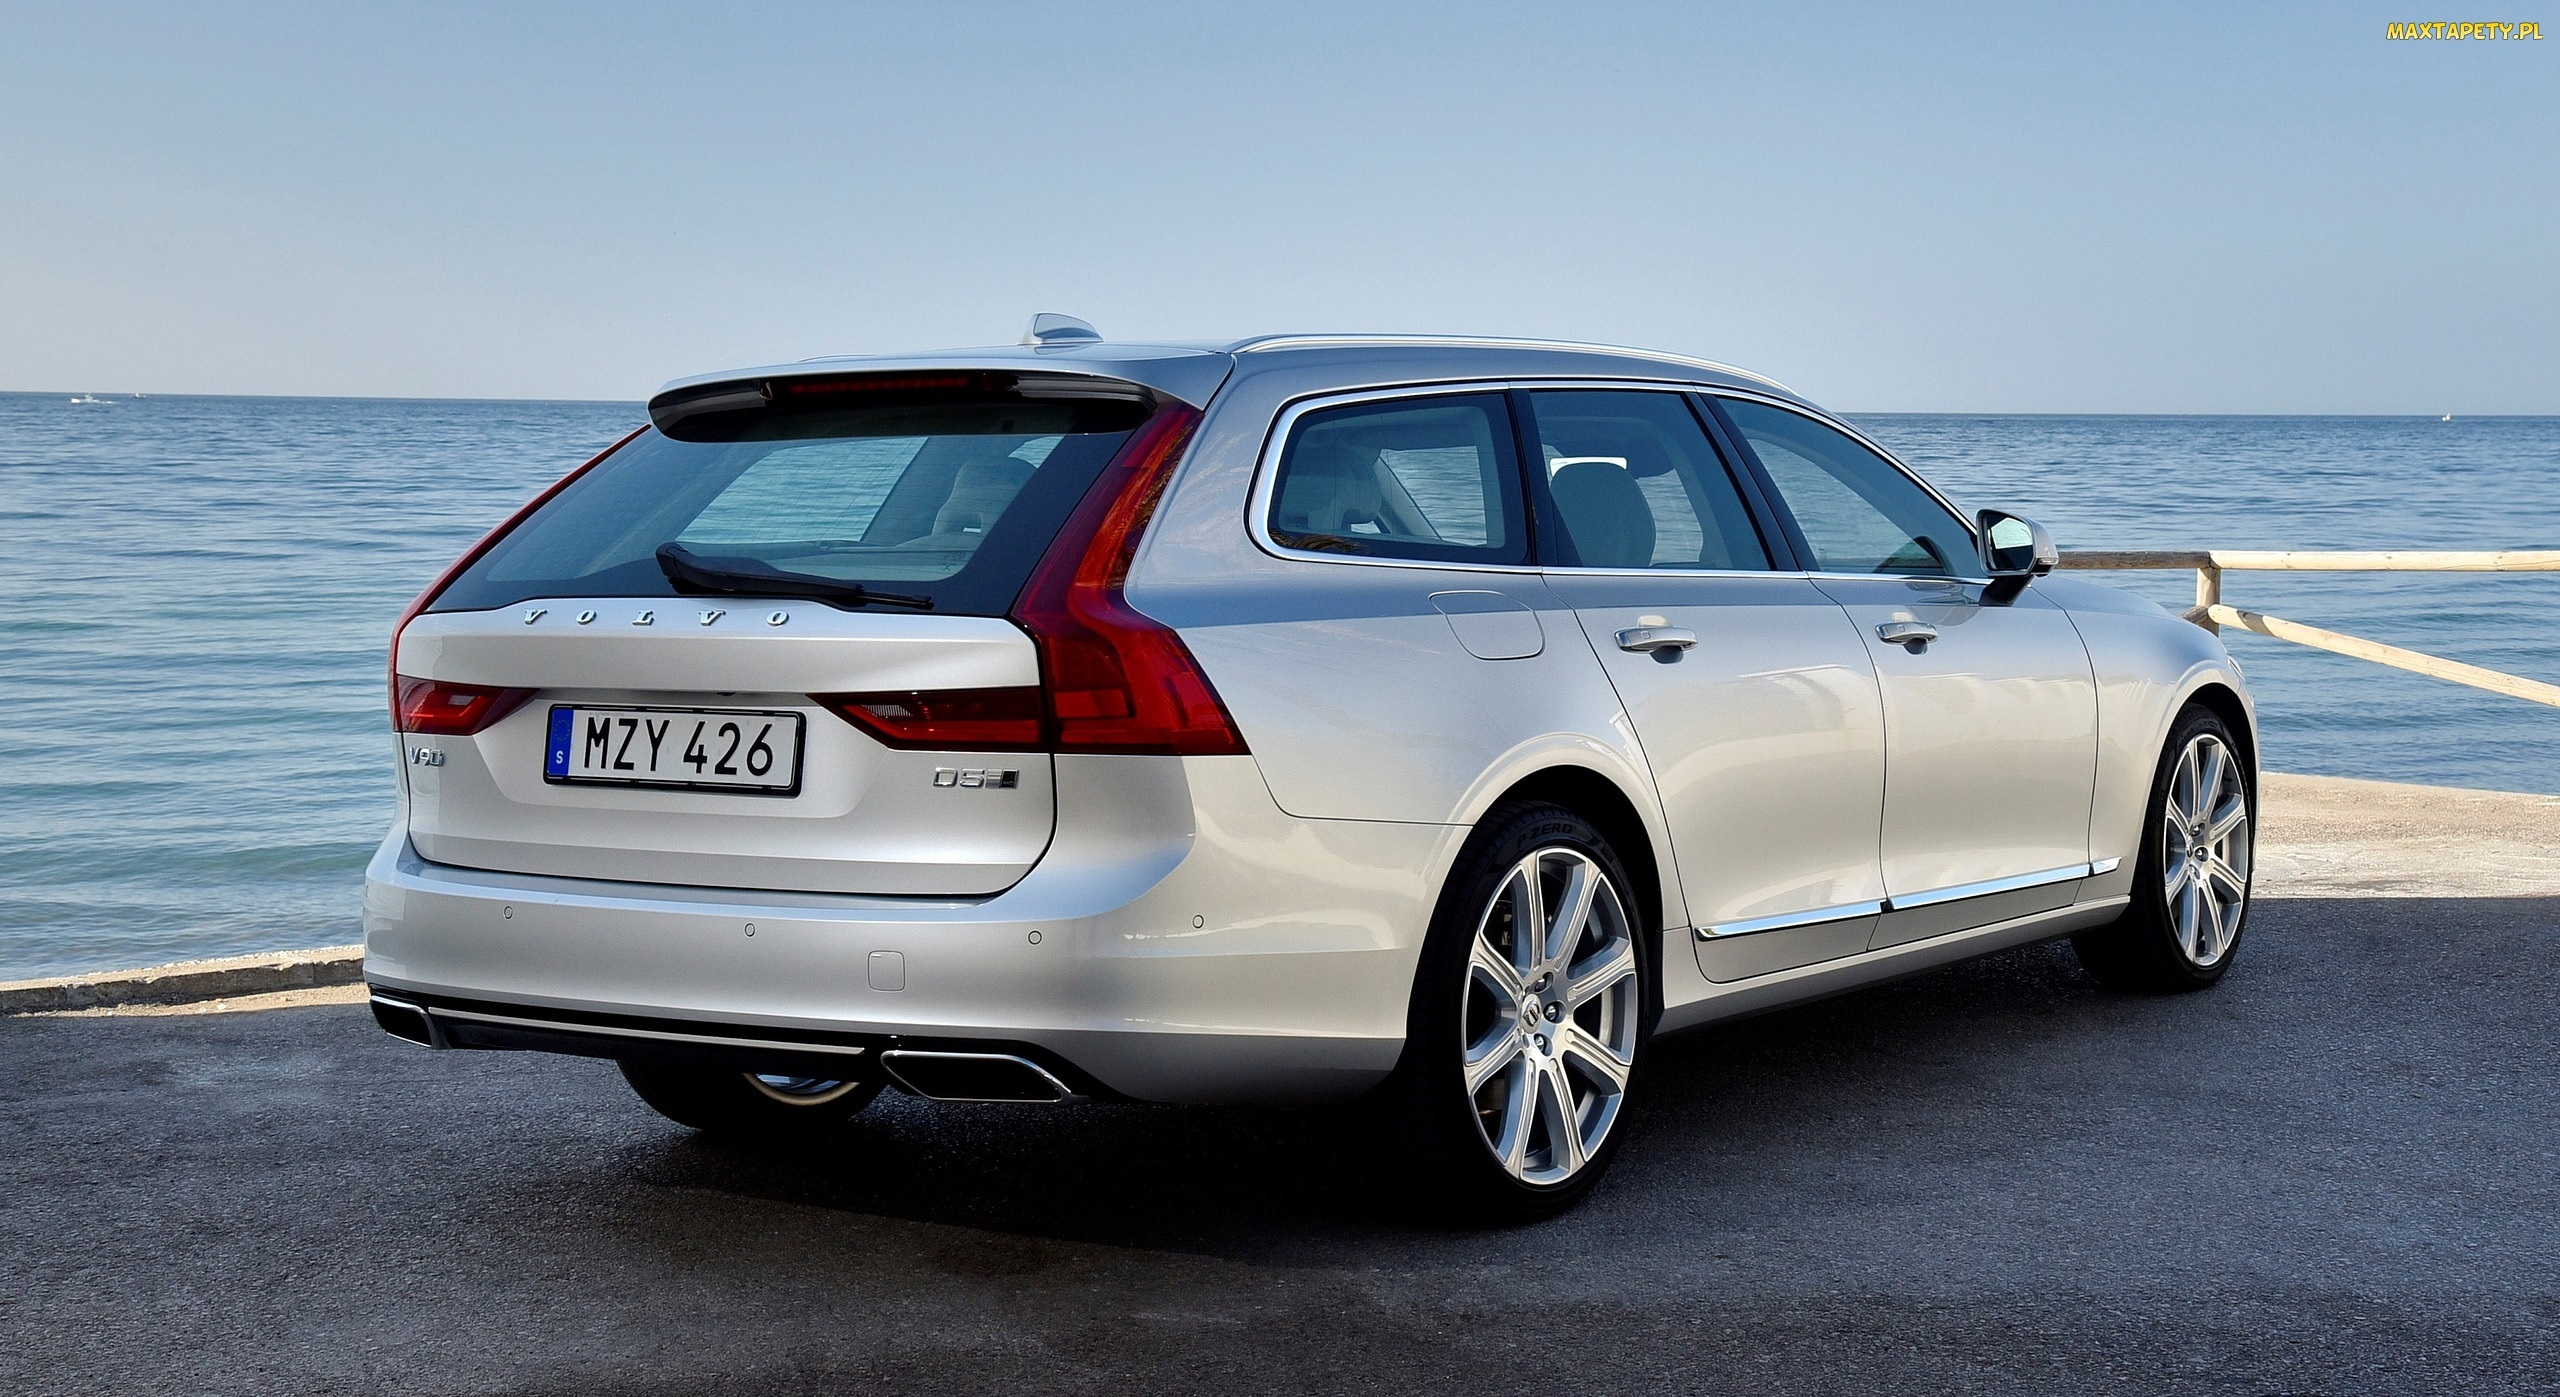 Volvo V90 D5 Inscription, Morze, 2016